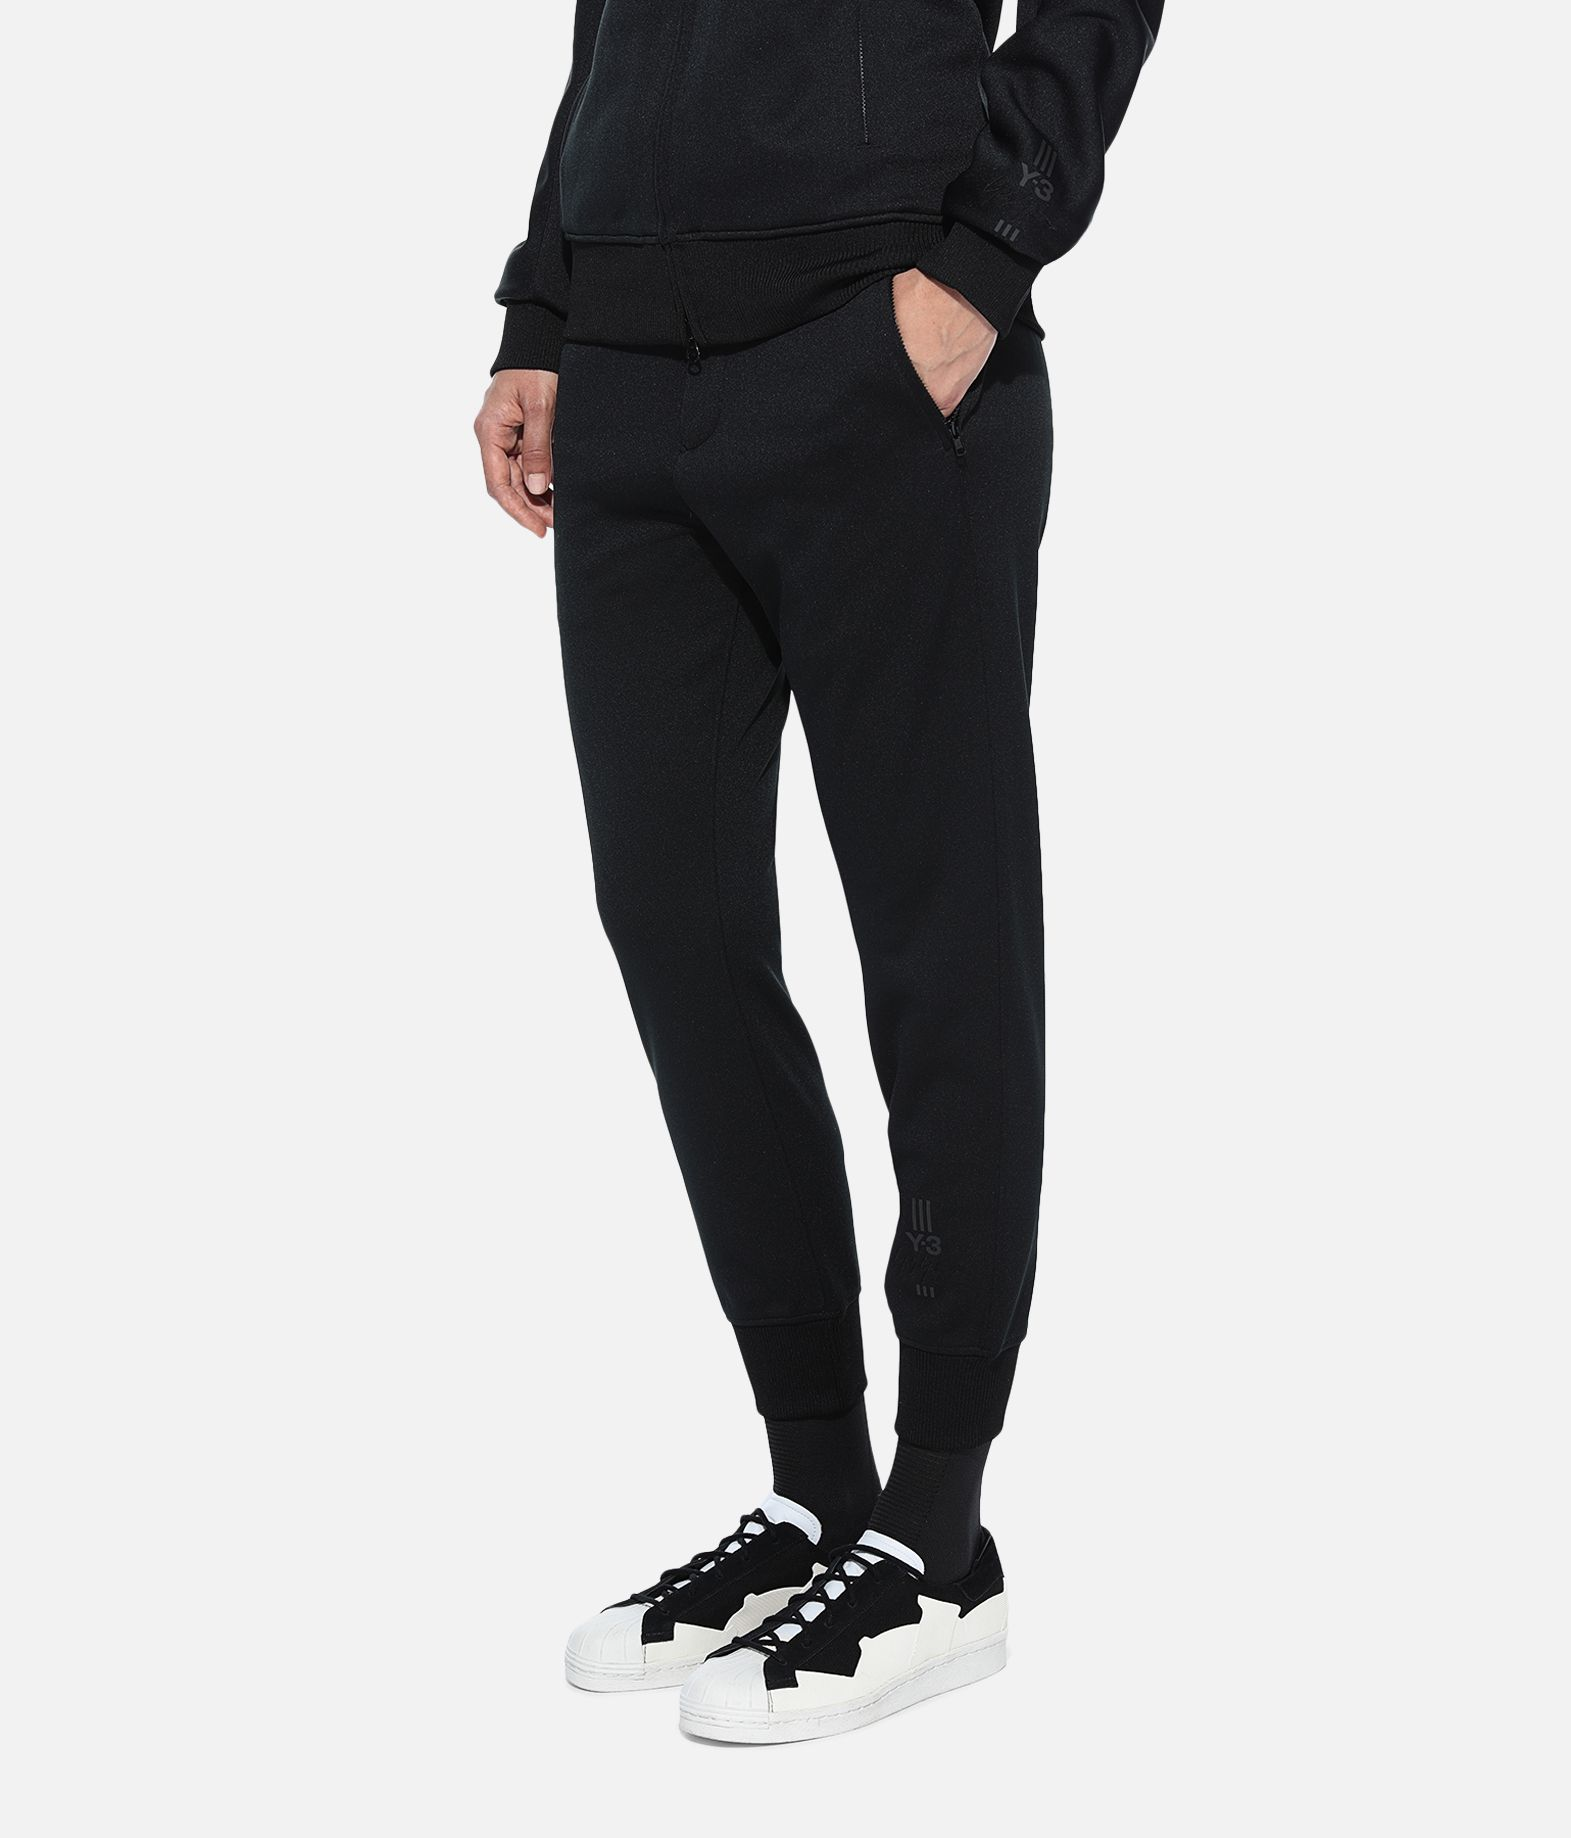 Y-3 Y-3 Classic Track Pants Tracksuit bottoms Woman e